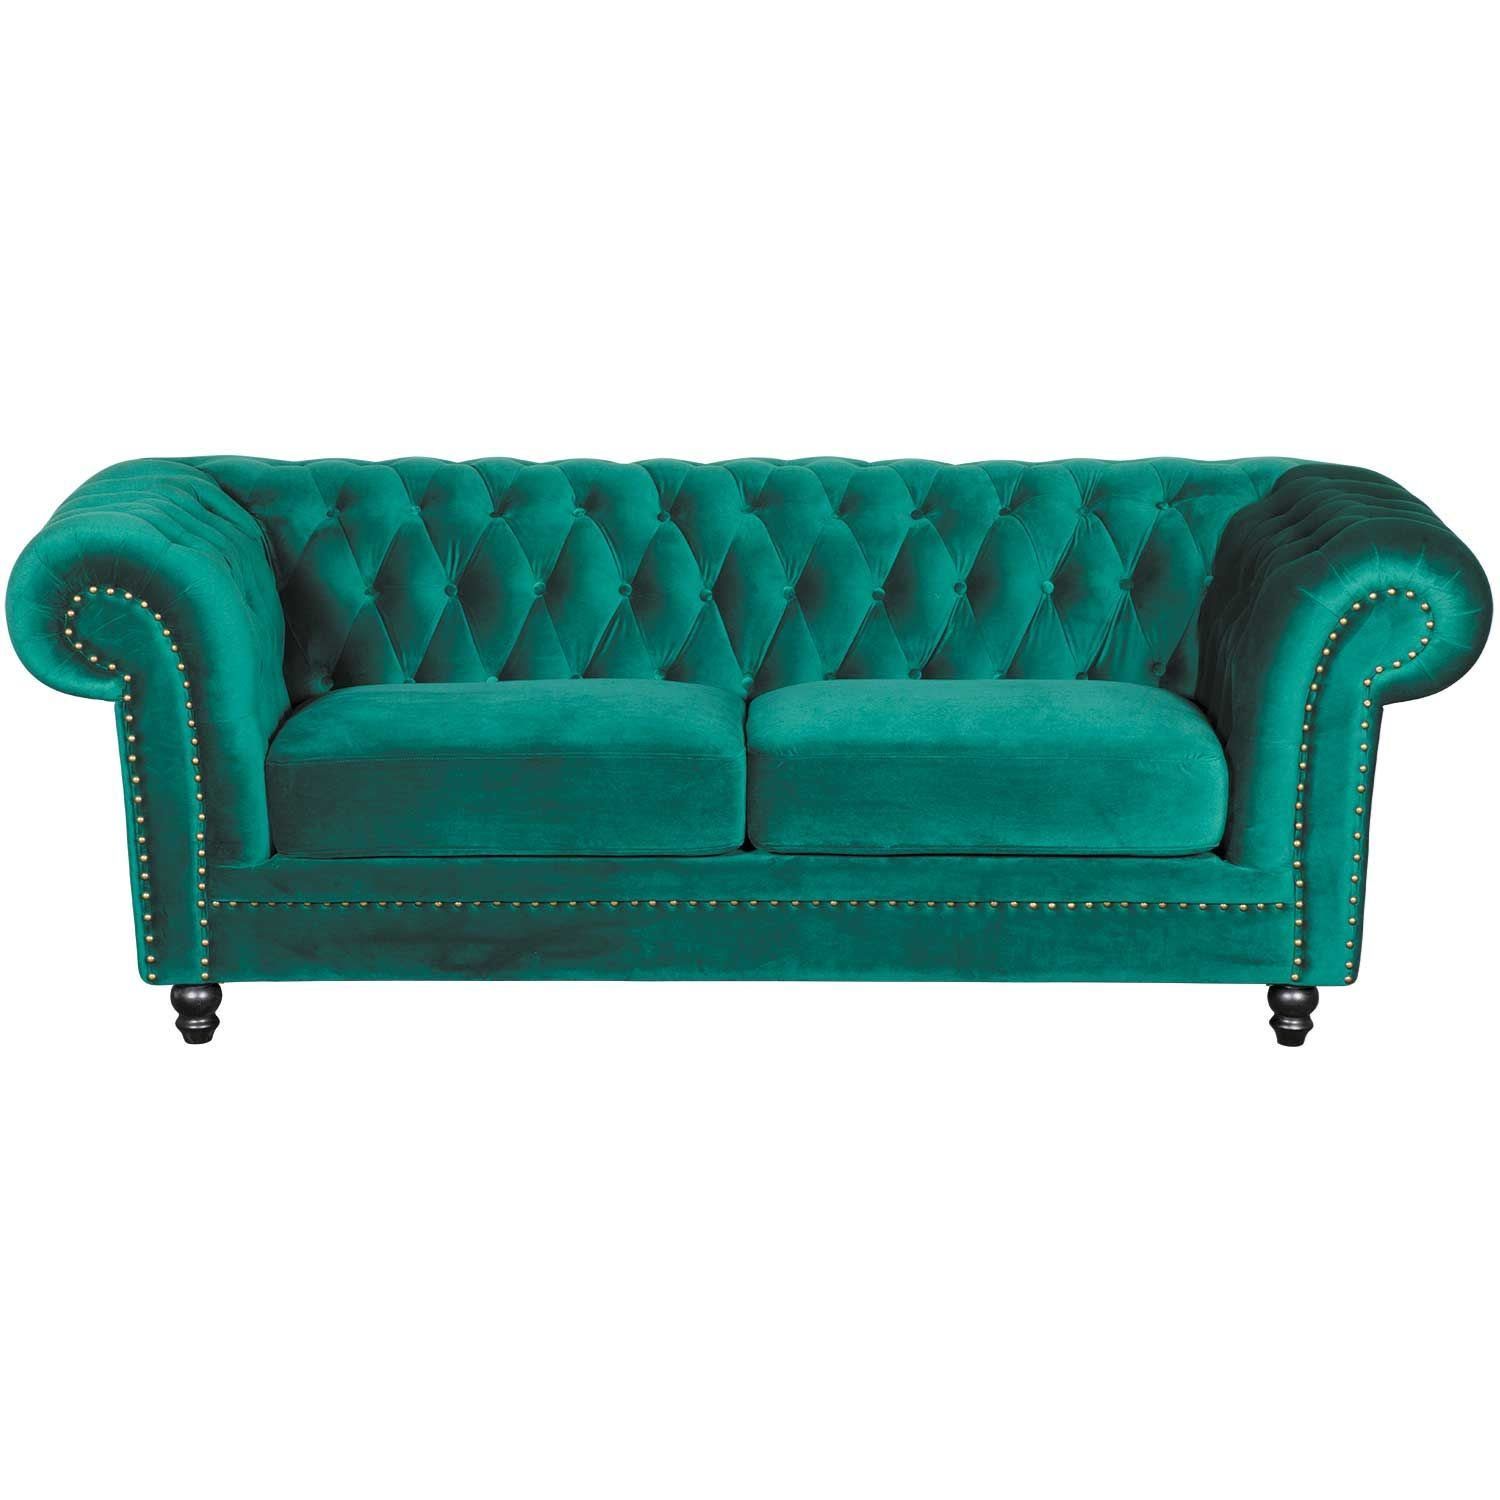 Callie Tufted Emerald Sofa | My225 S3/cc 42 | Cambridge Home | Afw Intended For Callie Sofa Chairs (View 10 of 25)